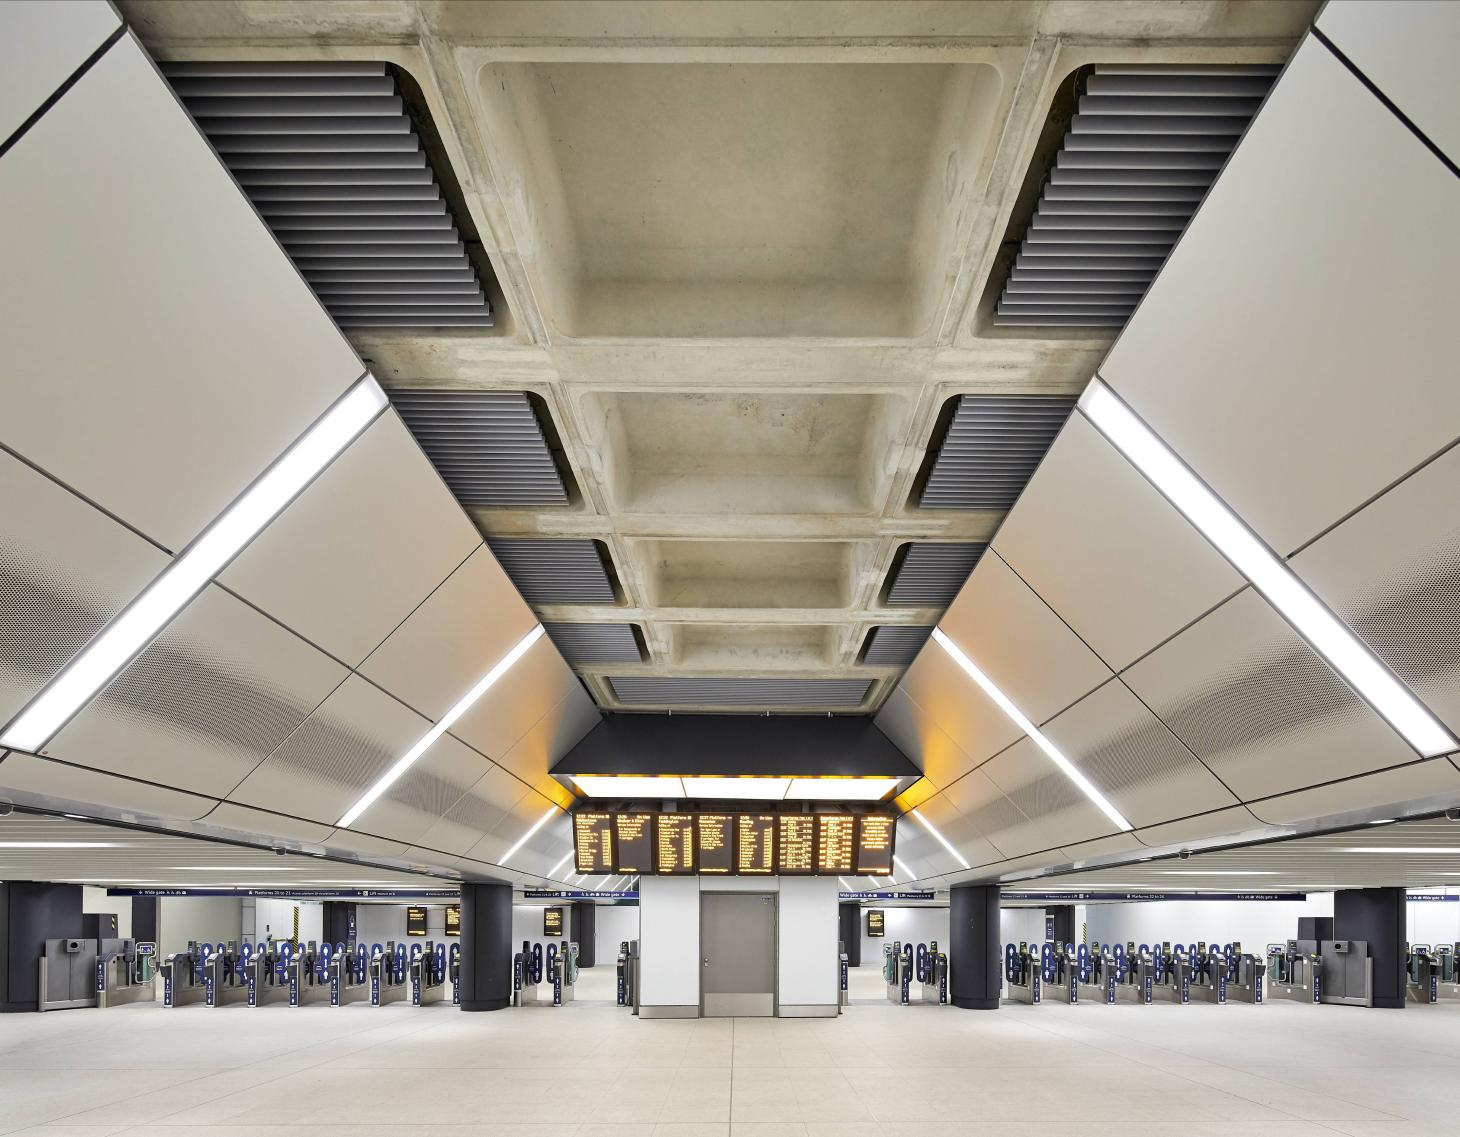 AECOM's careful attention to detail referenced the original 90s era design of the Terminal